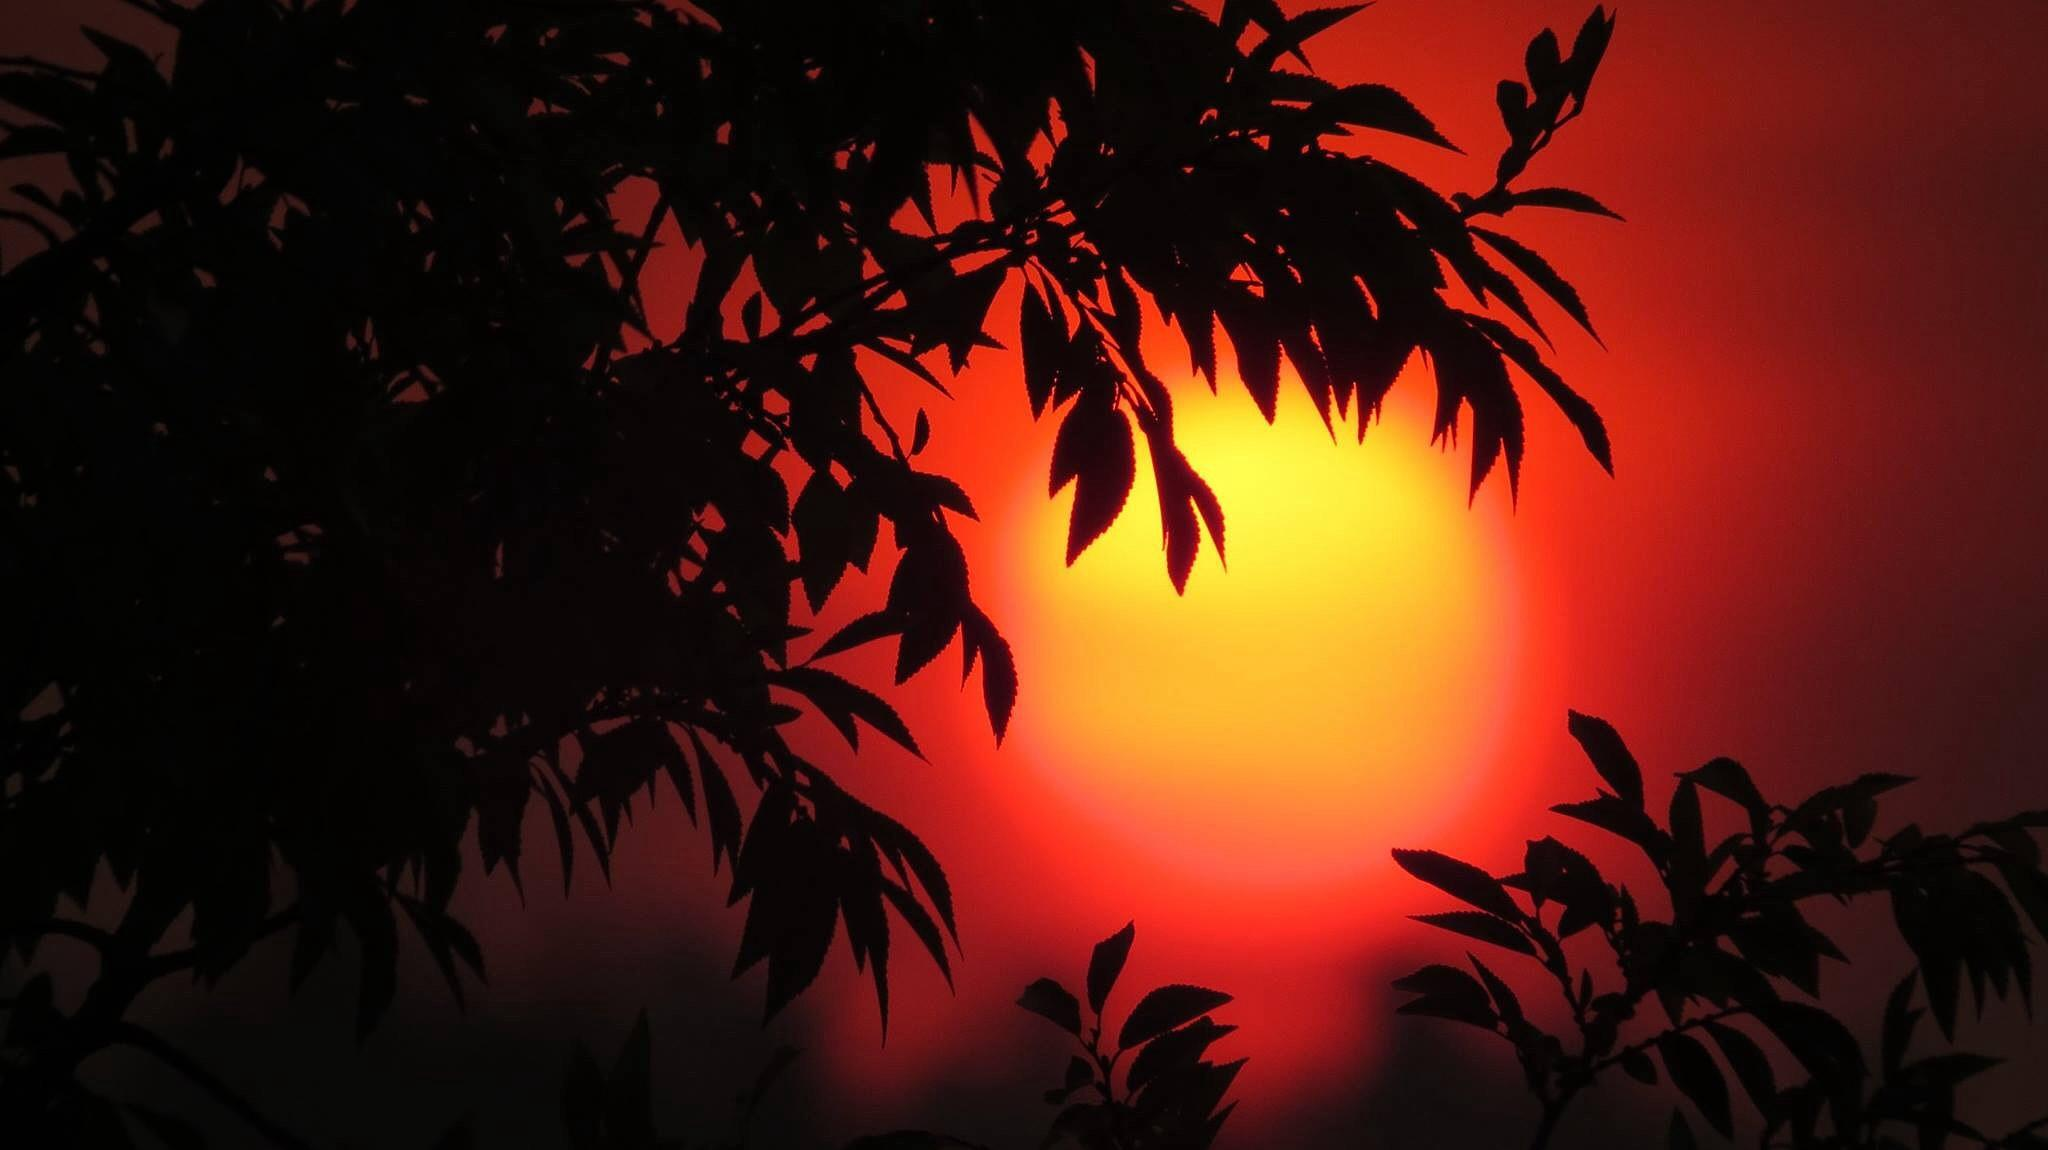 Sunset through the leaves by soulofcentralcoast